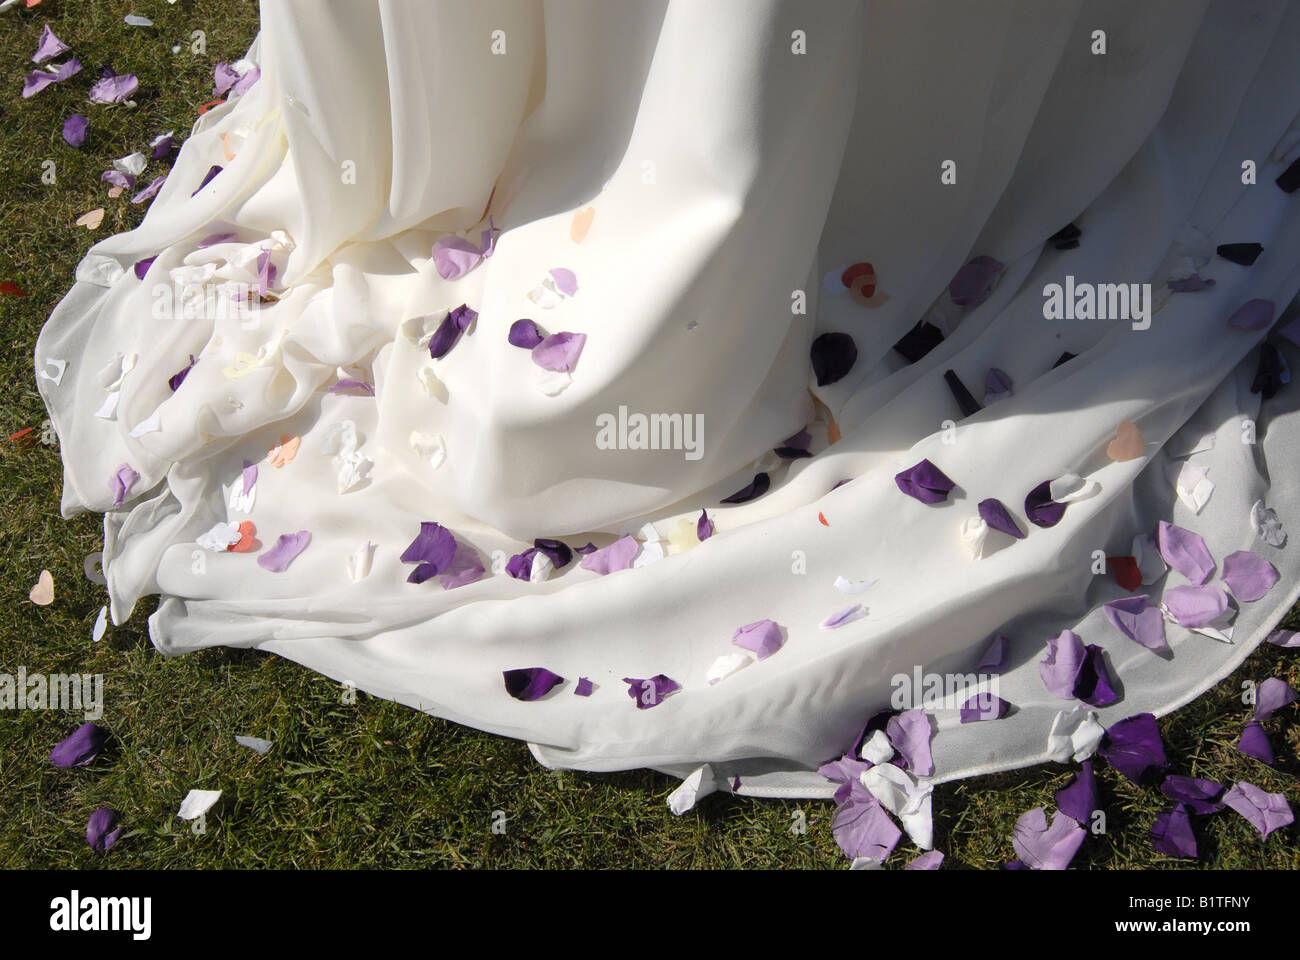 Rose petals and confetti on the train of a bride's dress on her wedding day. - Stock Image